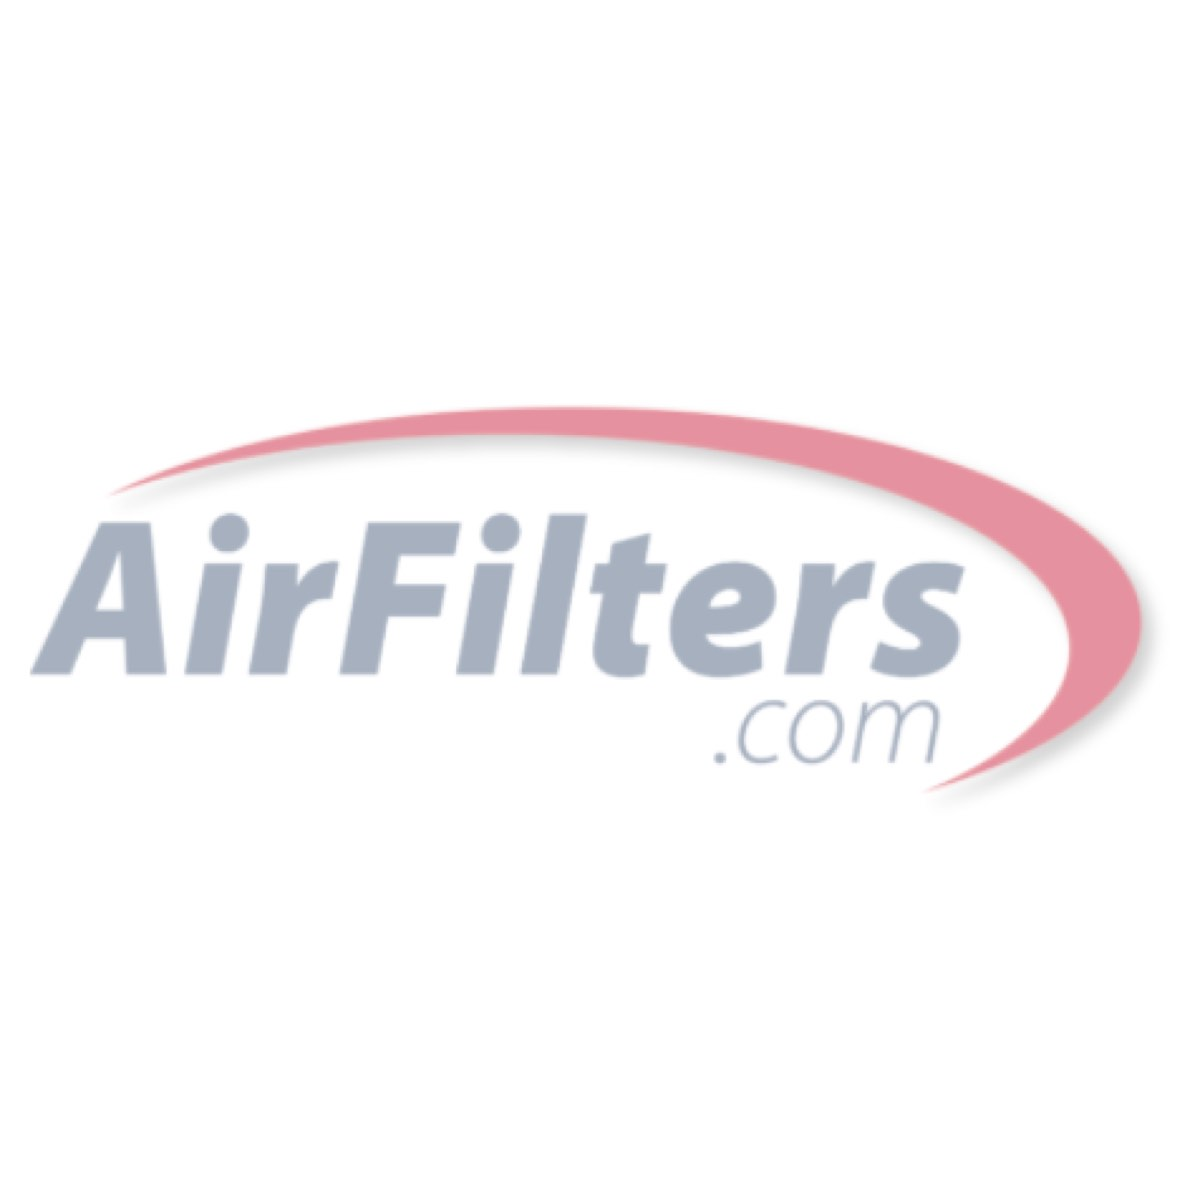 Electro-Air 16x22x5 Furnace Filters